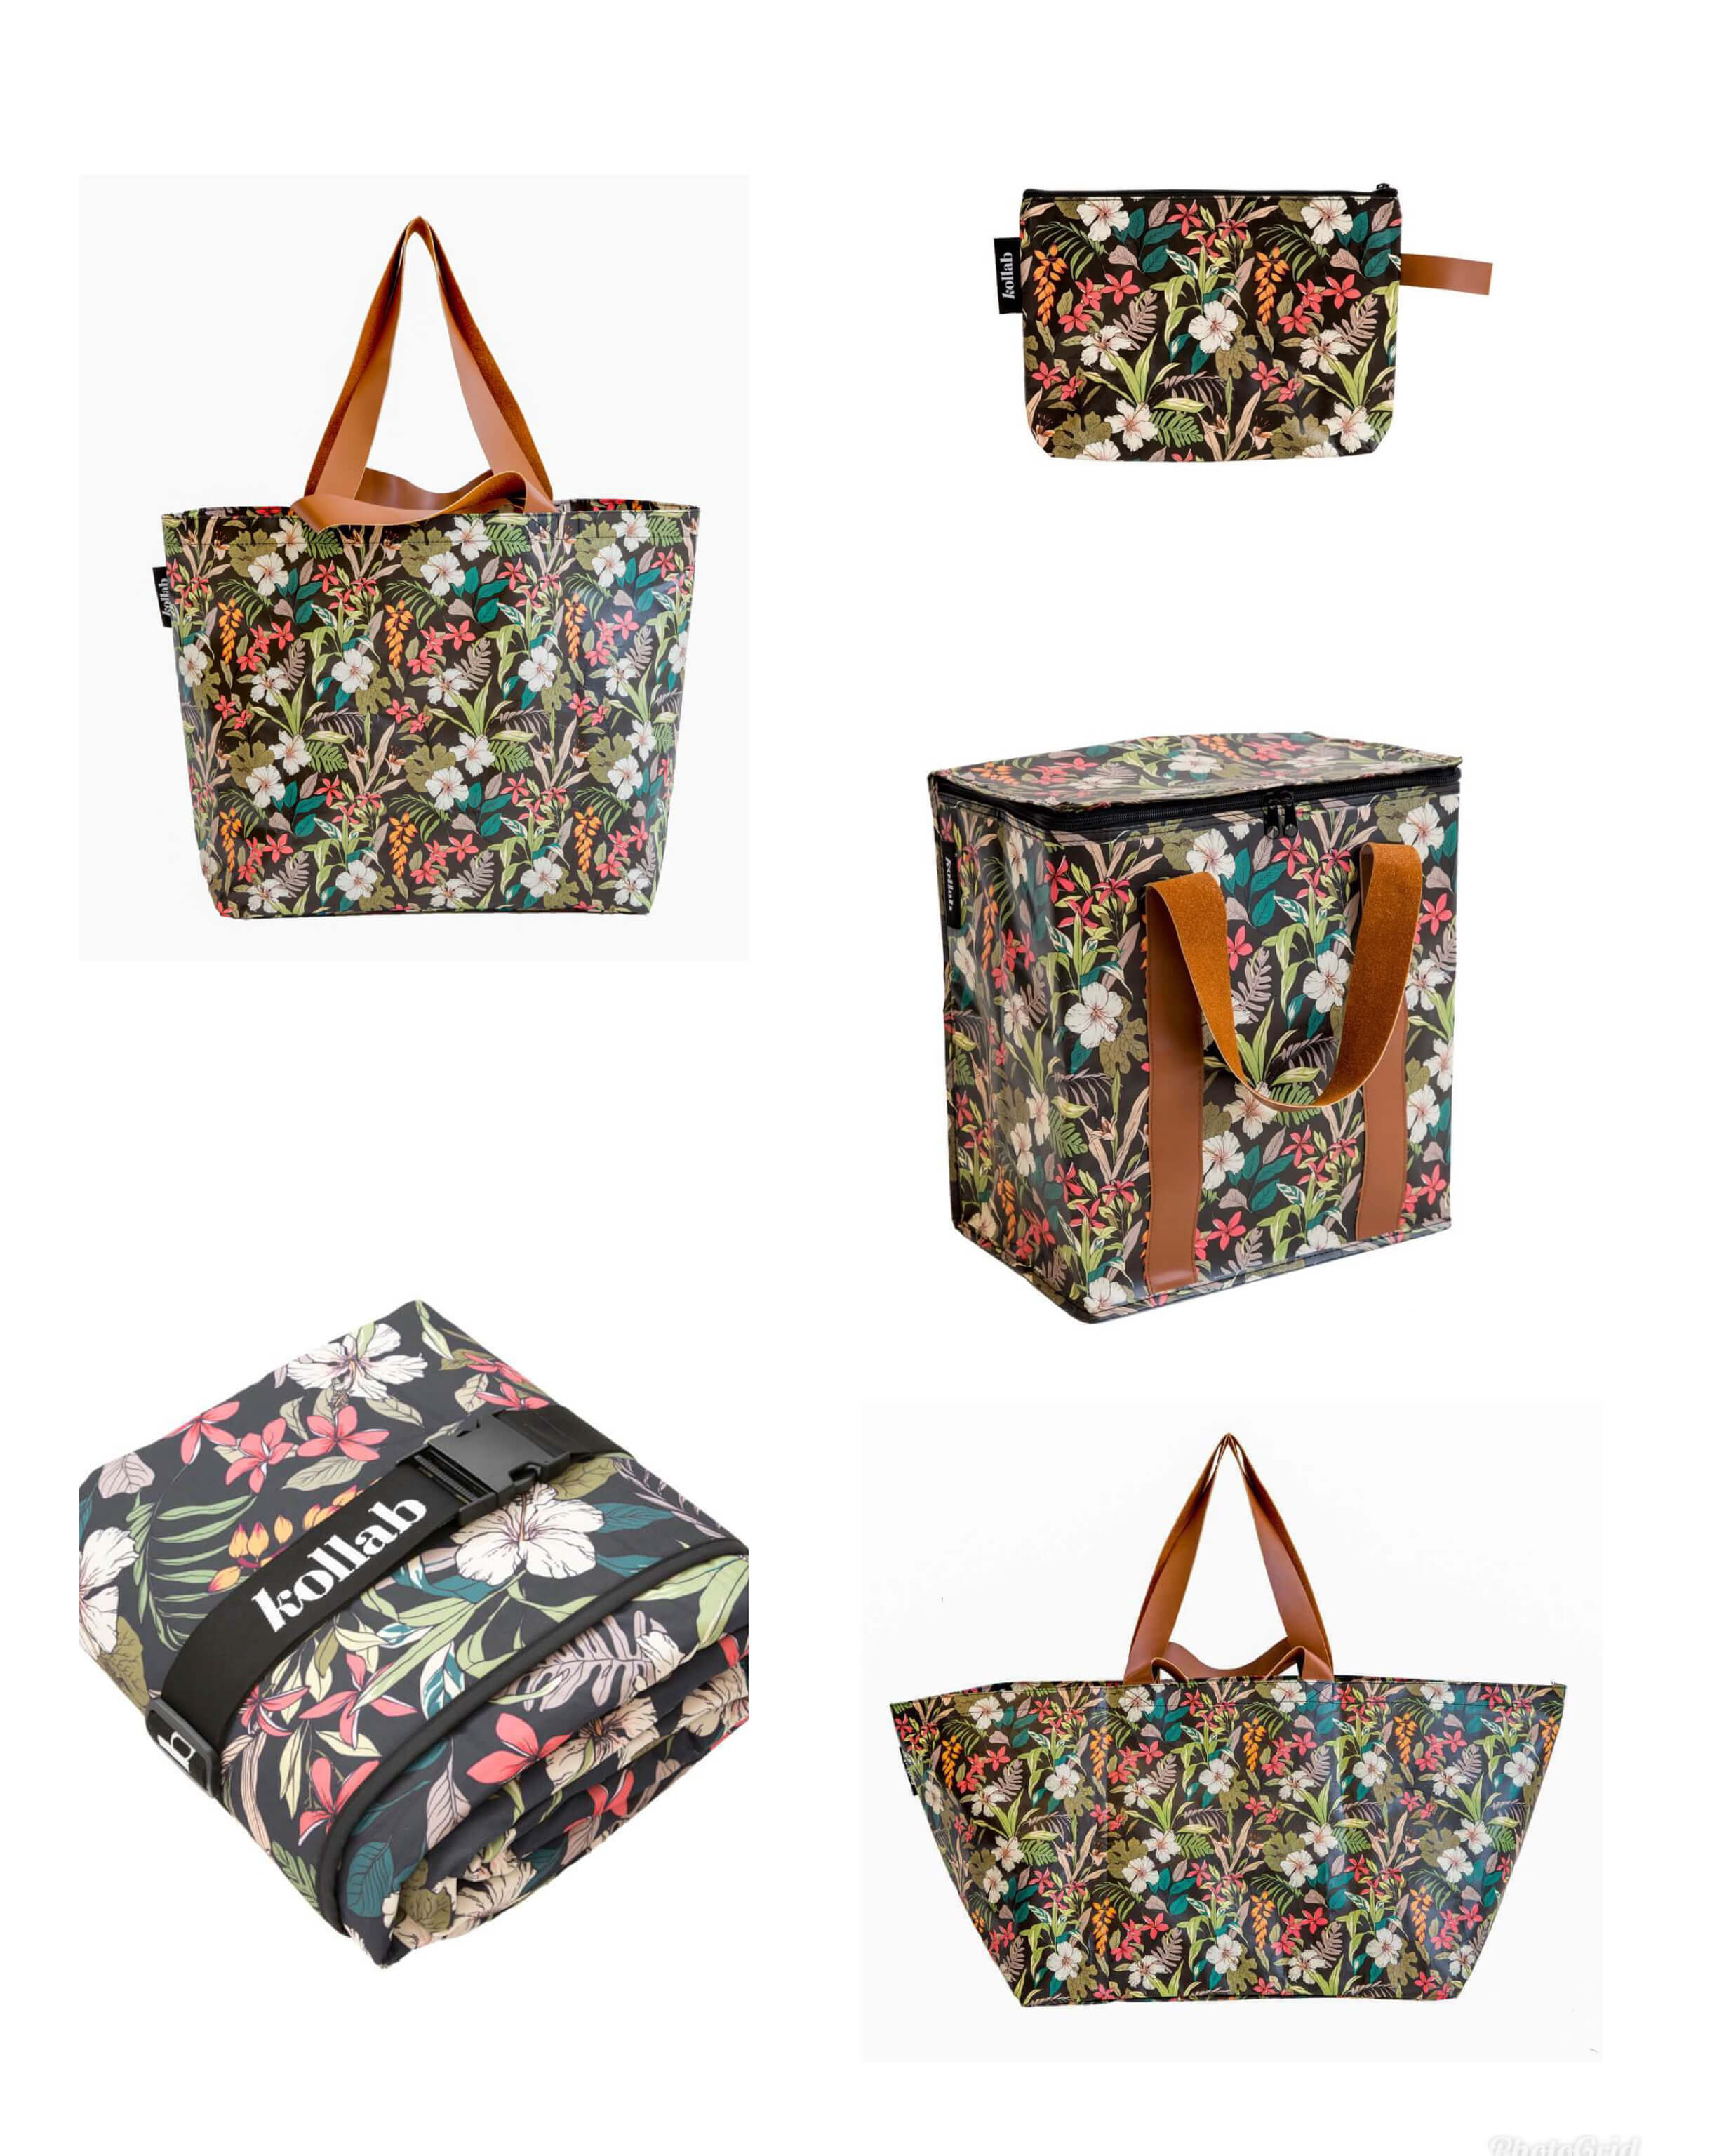 Kollab-hibiscus-picnic-mat-cooler-bag-clutch-shopper-tote-beach-bag-the-home-maven